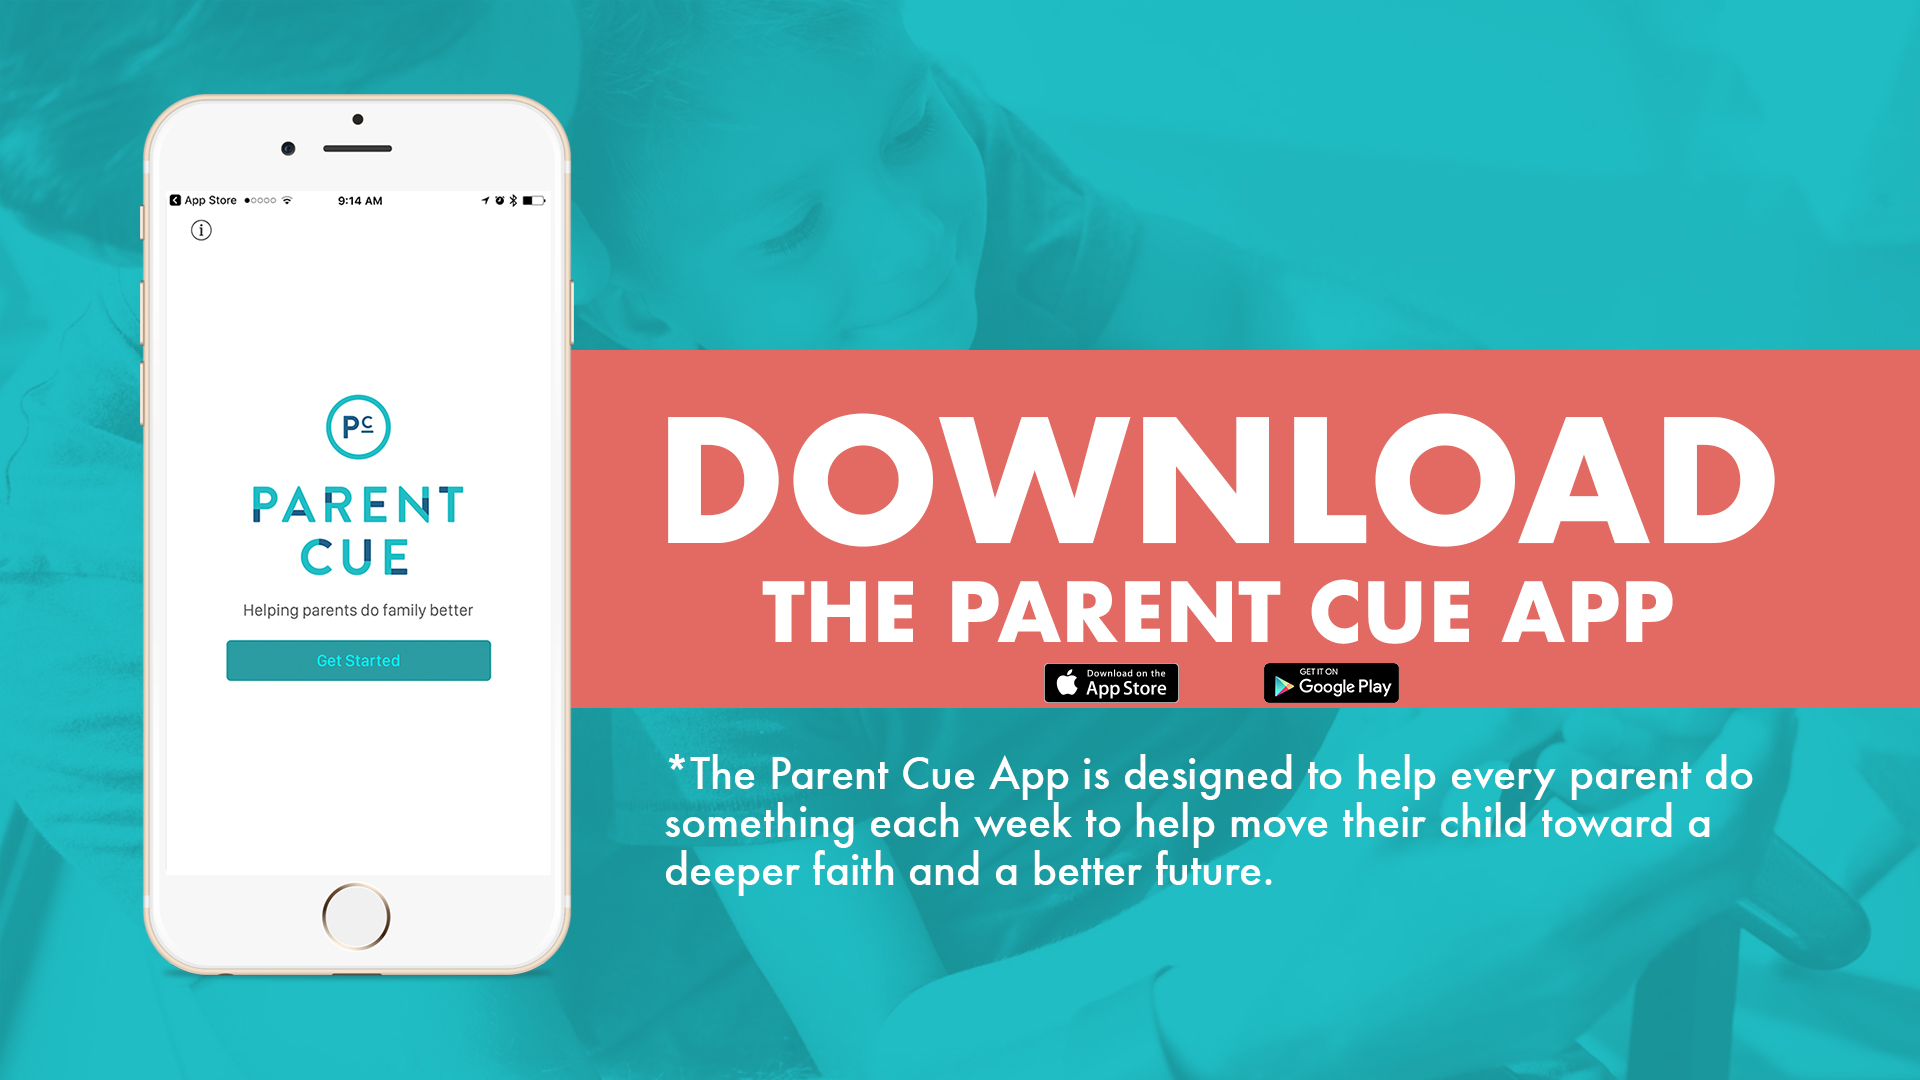 PARENT CUE APP - Get information about KidZone, specific resources for your child's age, a reminder to be intentional about your child's faith, and more!DOWNLOAD IT HERE TODAY!